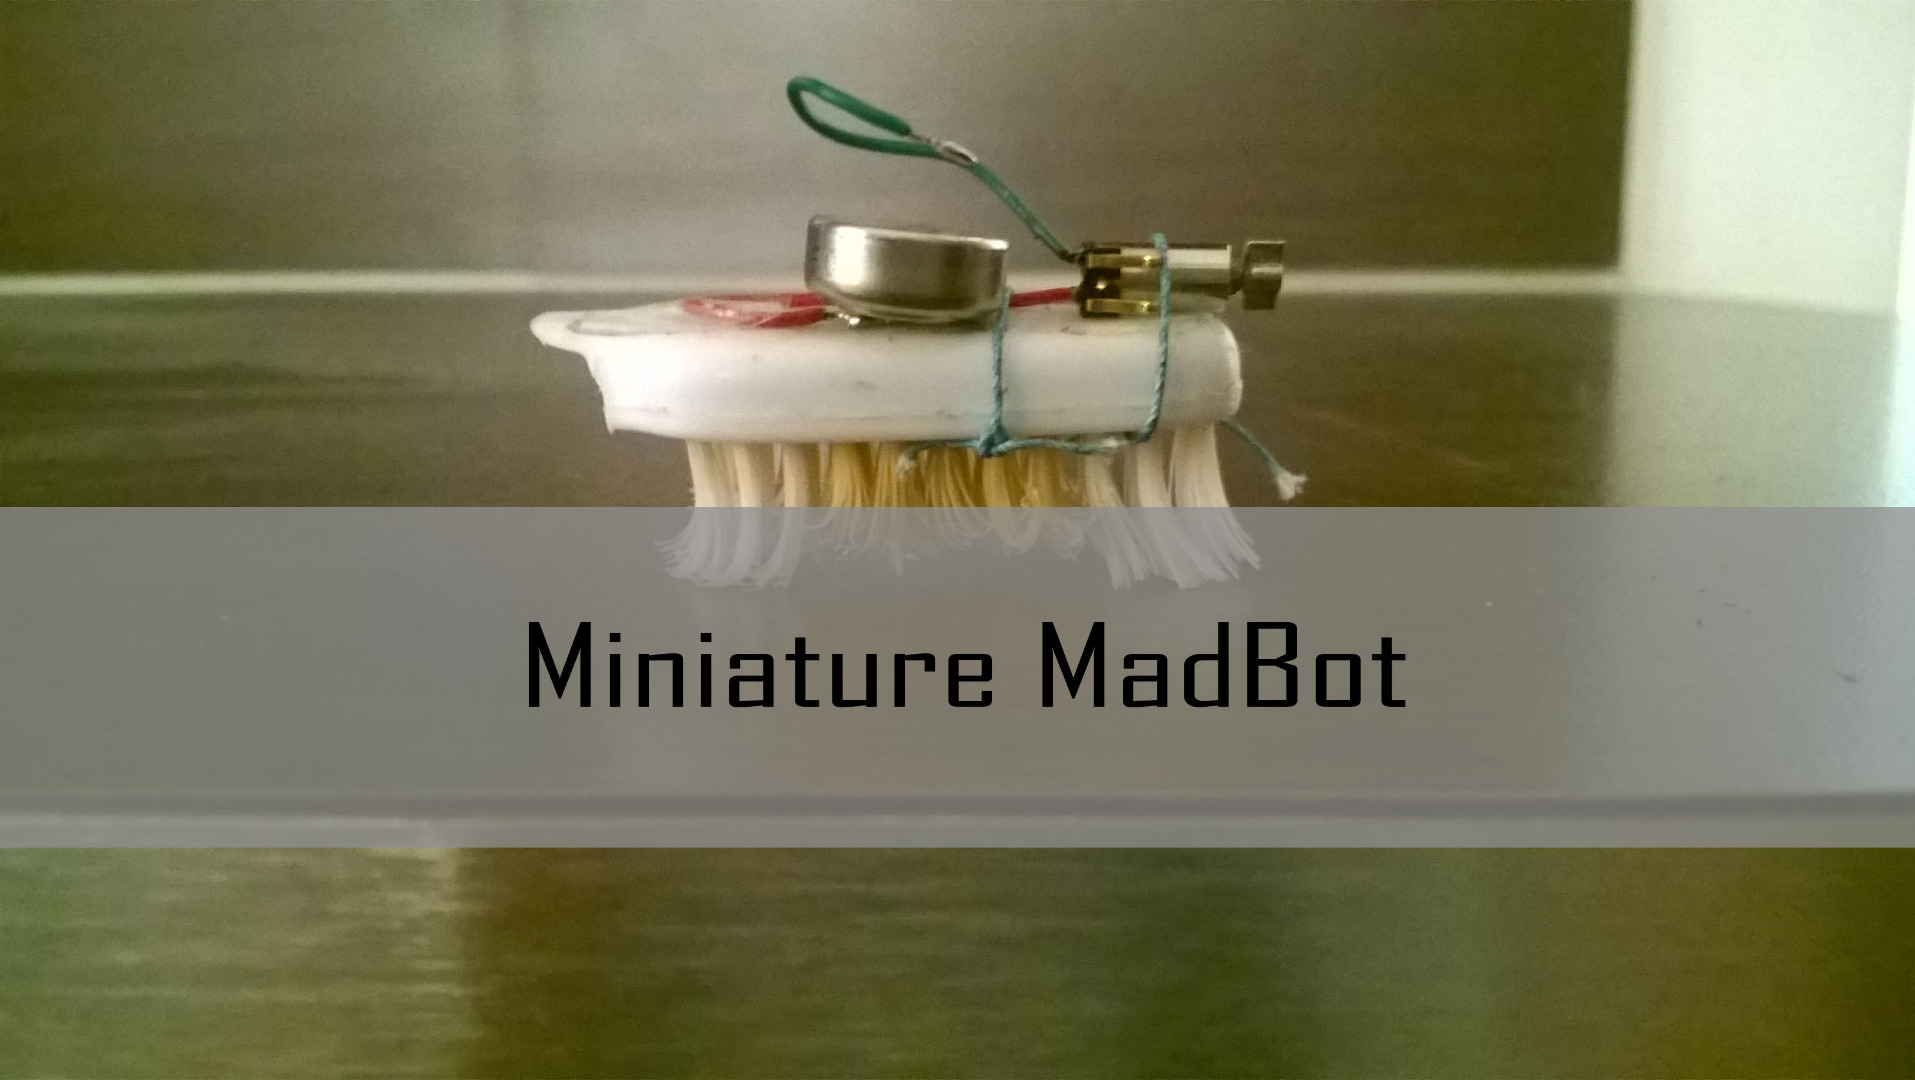 Picture of Miniature MadBot